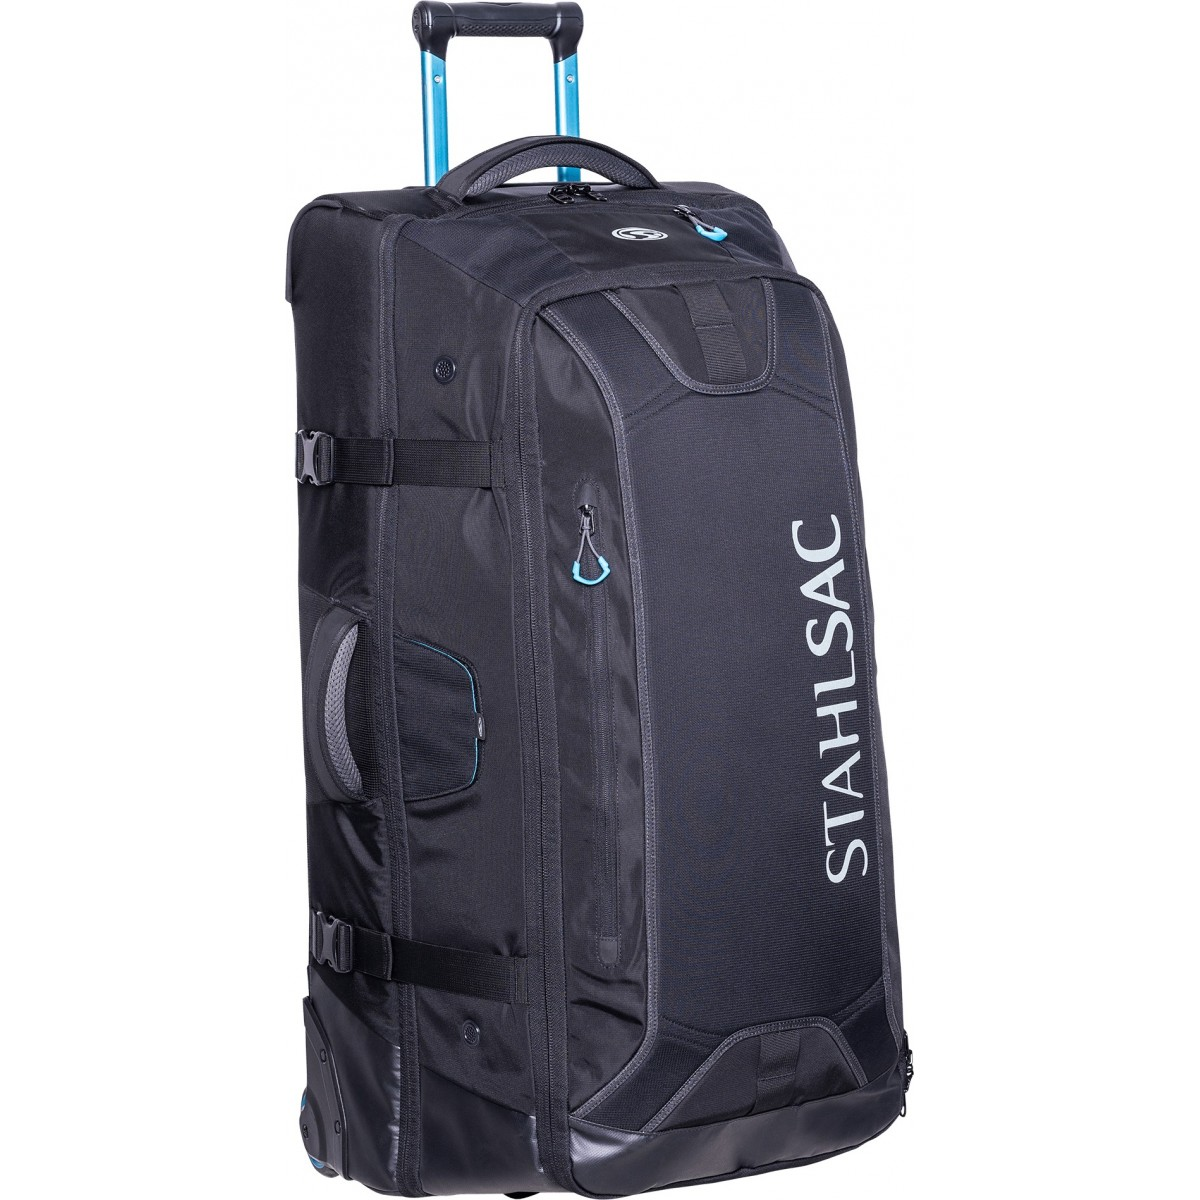 Stahlsac Steel 34 Roller Bag